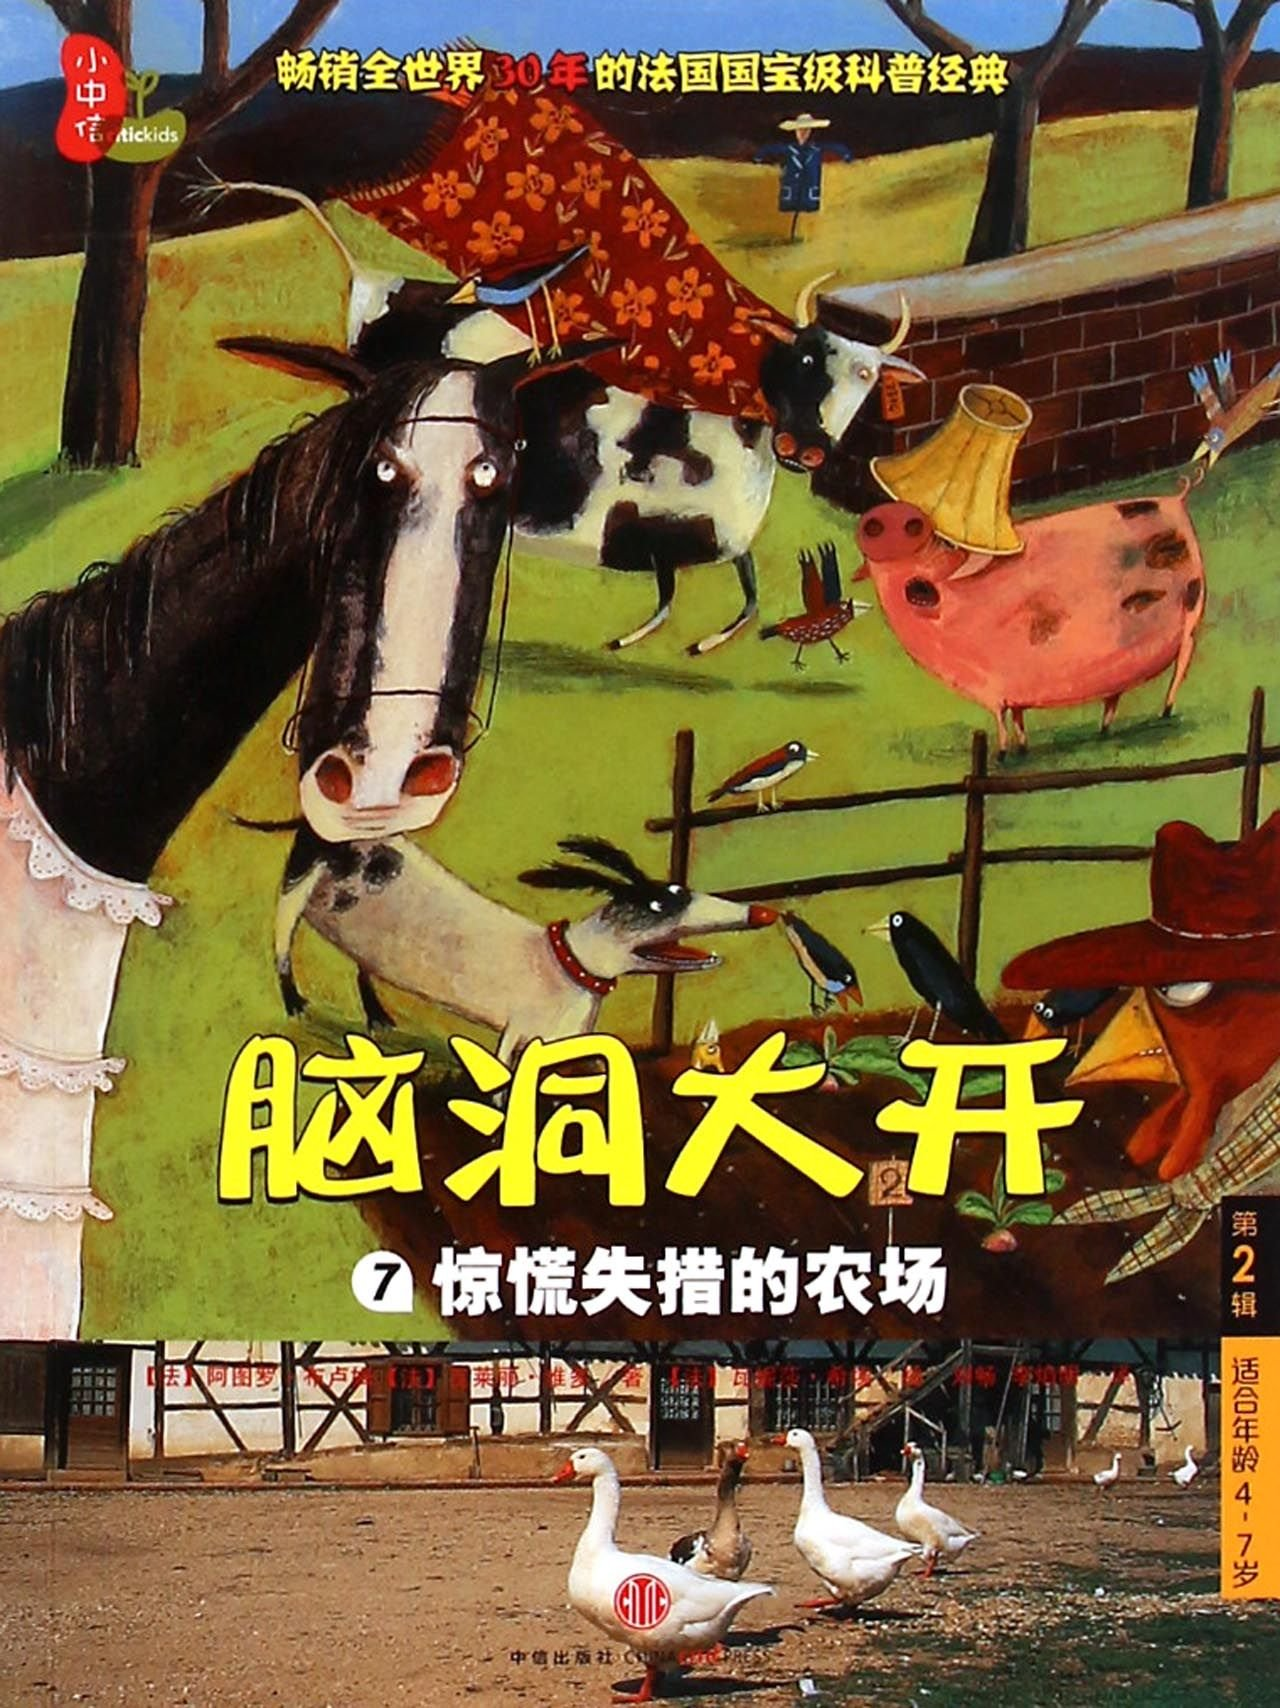 Open Your Mind (7, The Panic-Stricken Farm, For Children Aged 4-7) (Chinese Edition) pdf